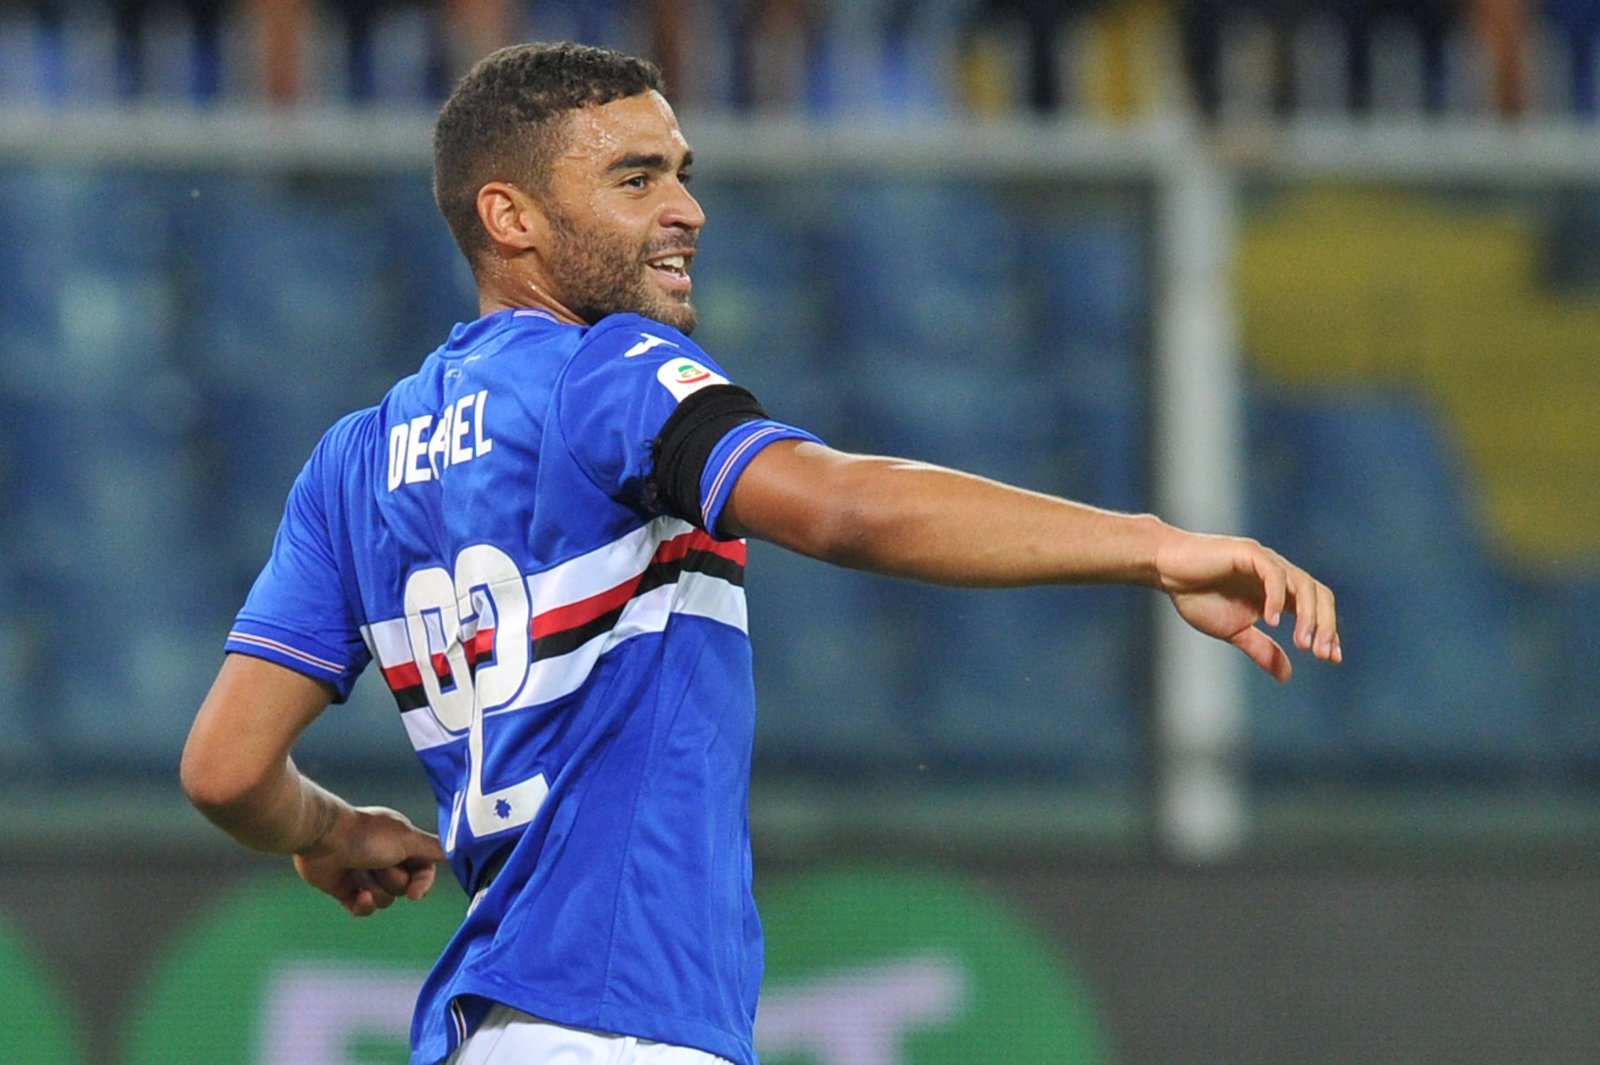 Everton: Gregoire Defrel doesn't have the kind of record needed